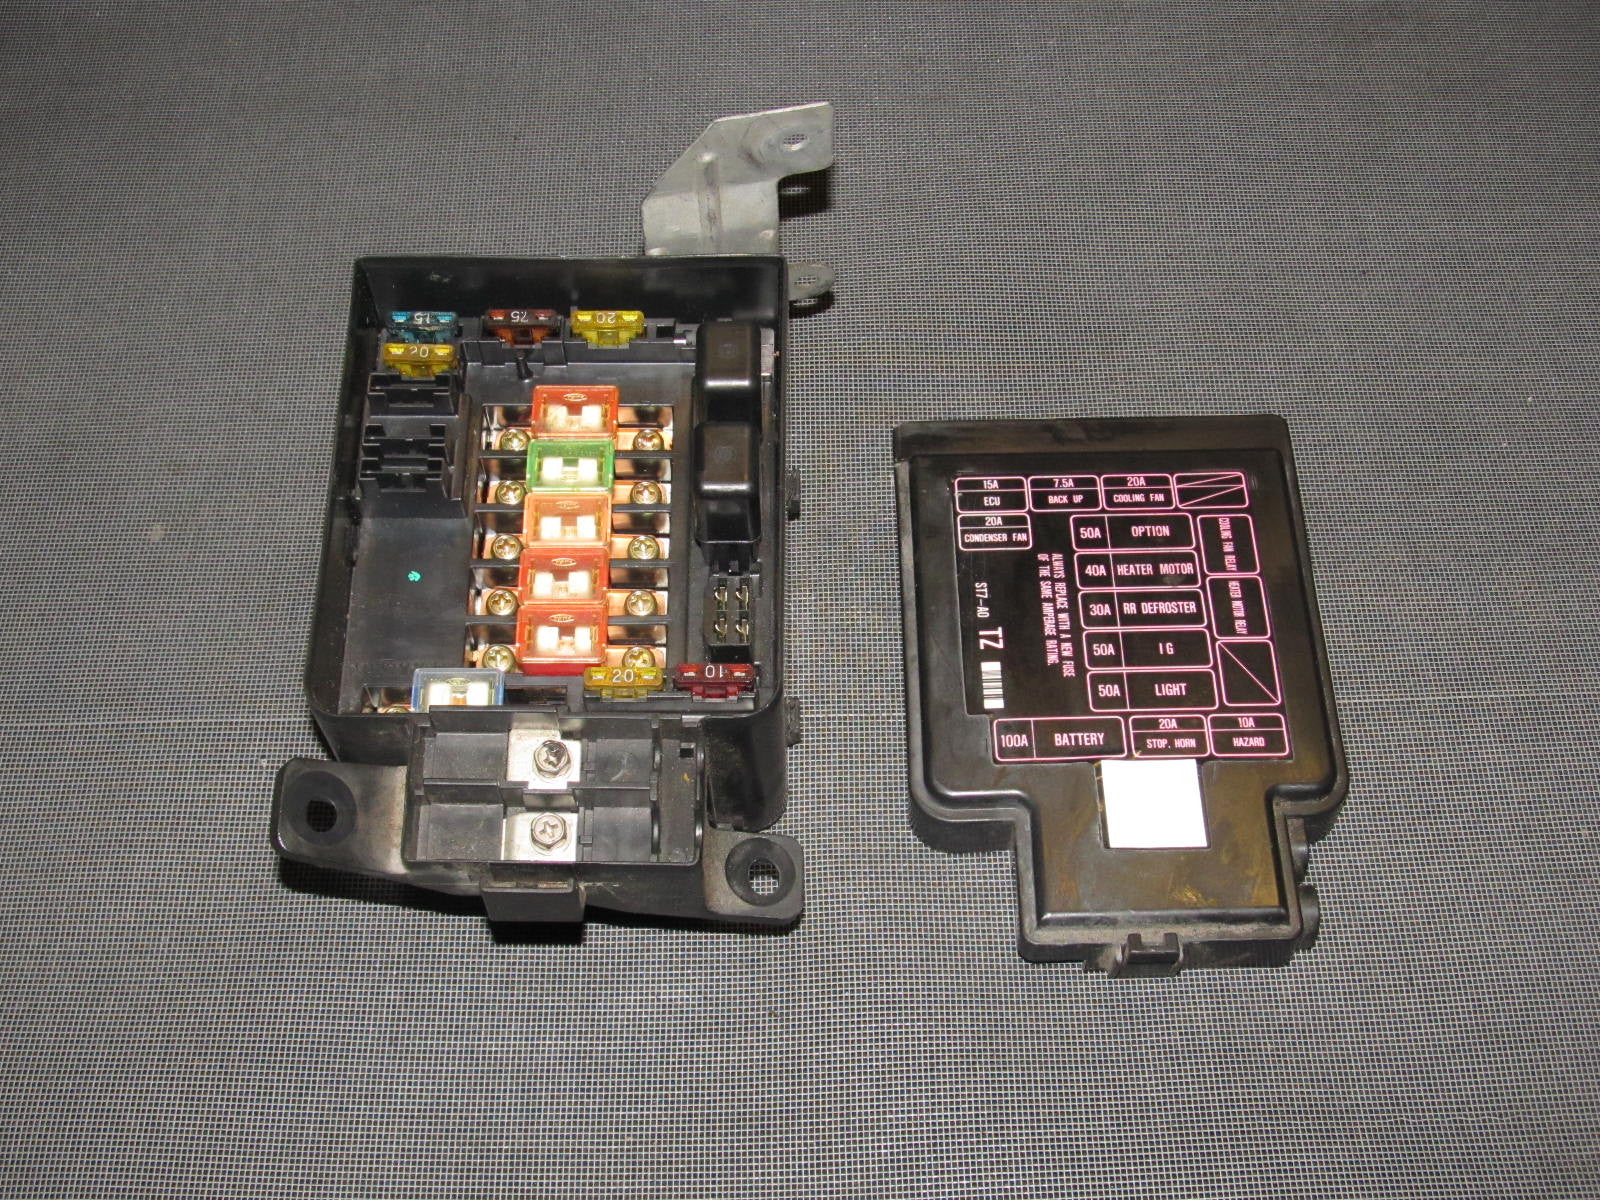 94 95 96 97 98 99 00 01 Acura Integra Oem Engine Fuse Box